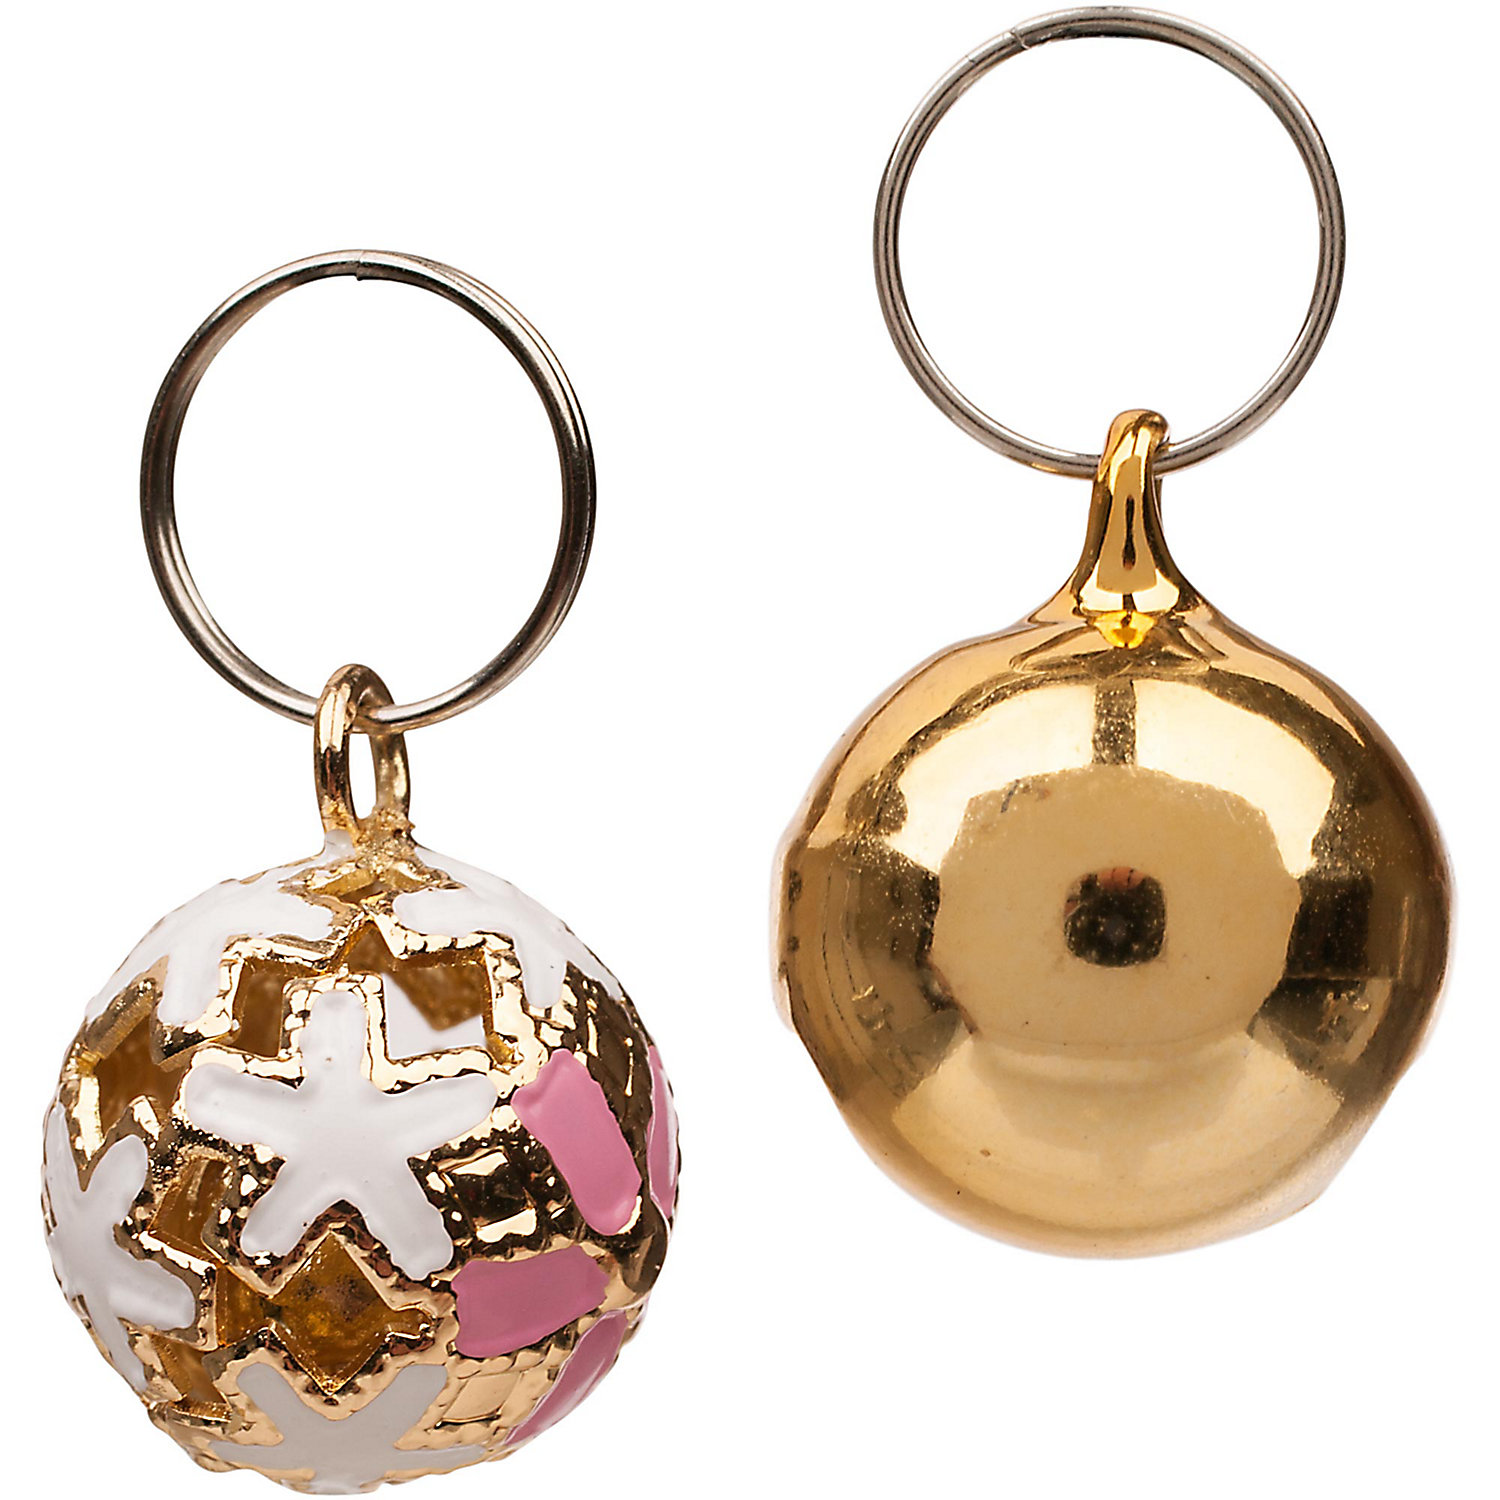 Bond Co Solid Metallic Collar Bells One Size Fits All Gold